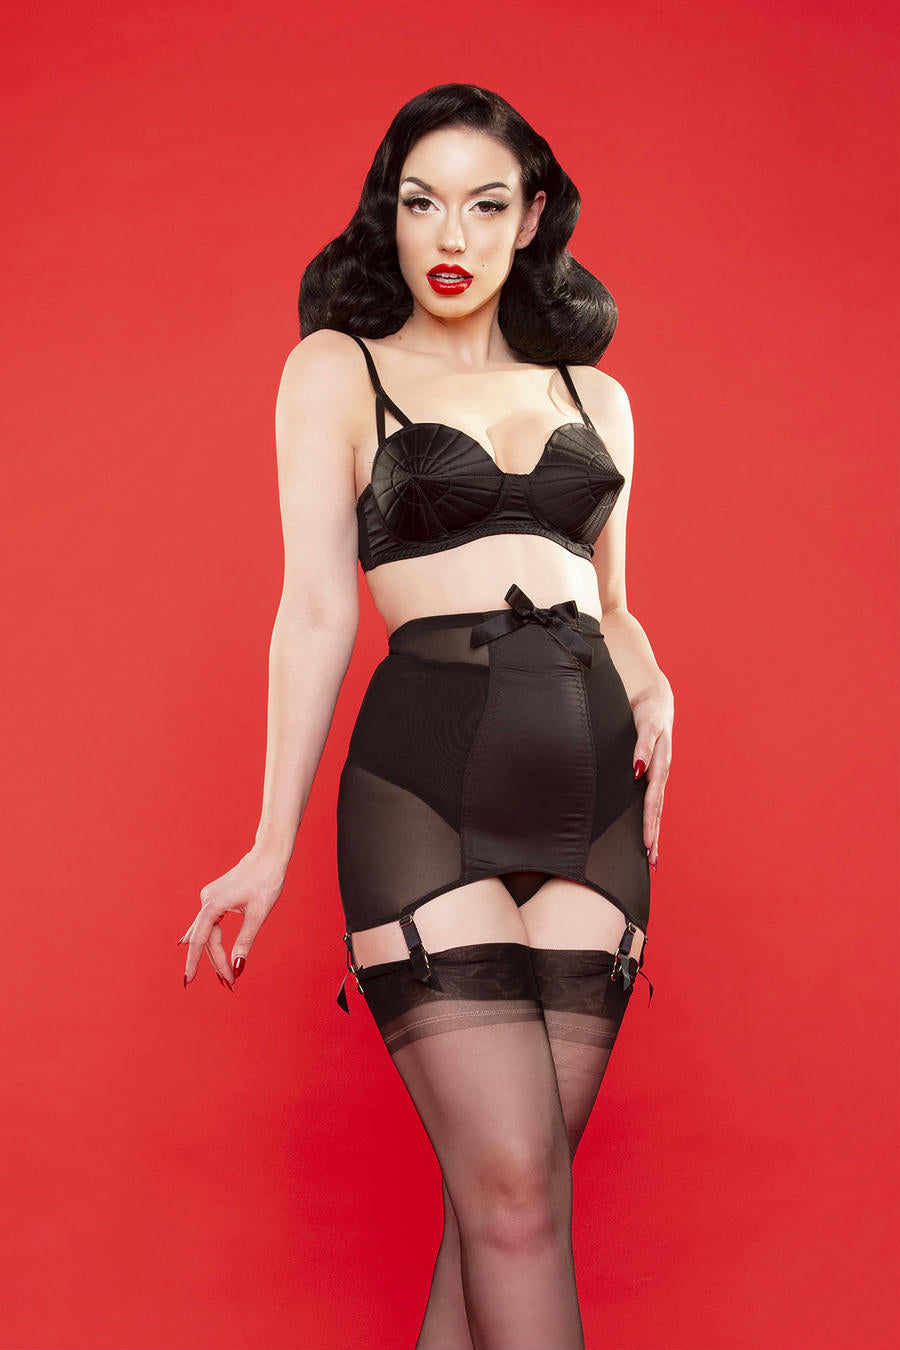 Satin Girdle - only size 10 left!